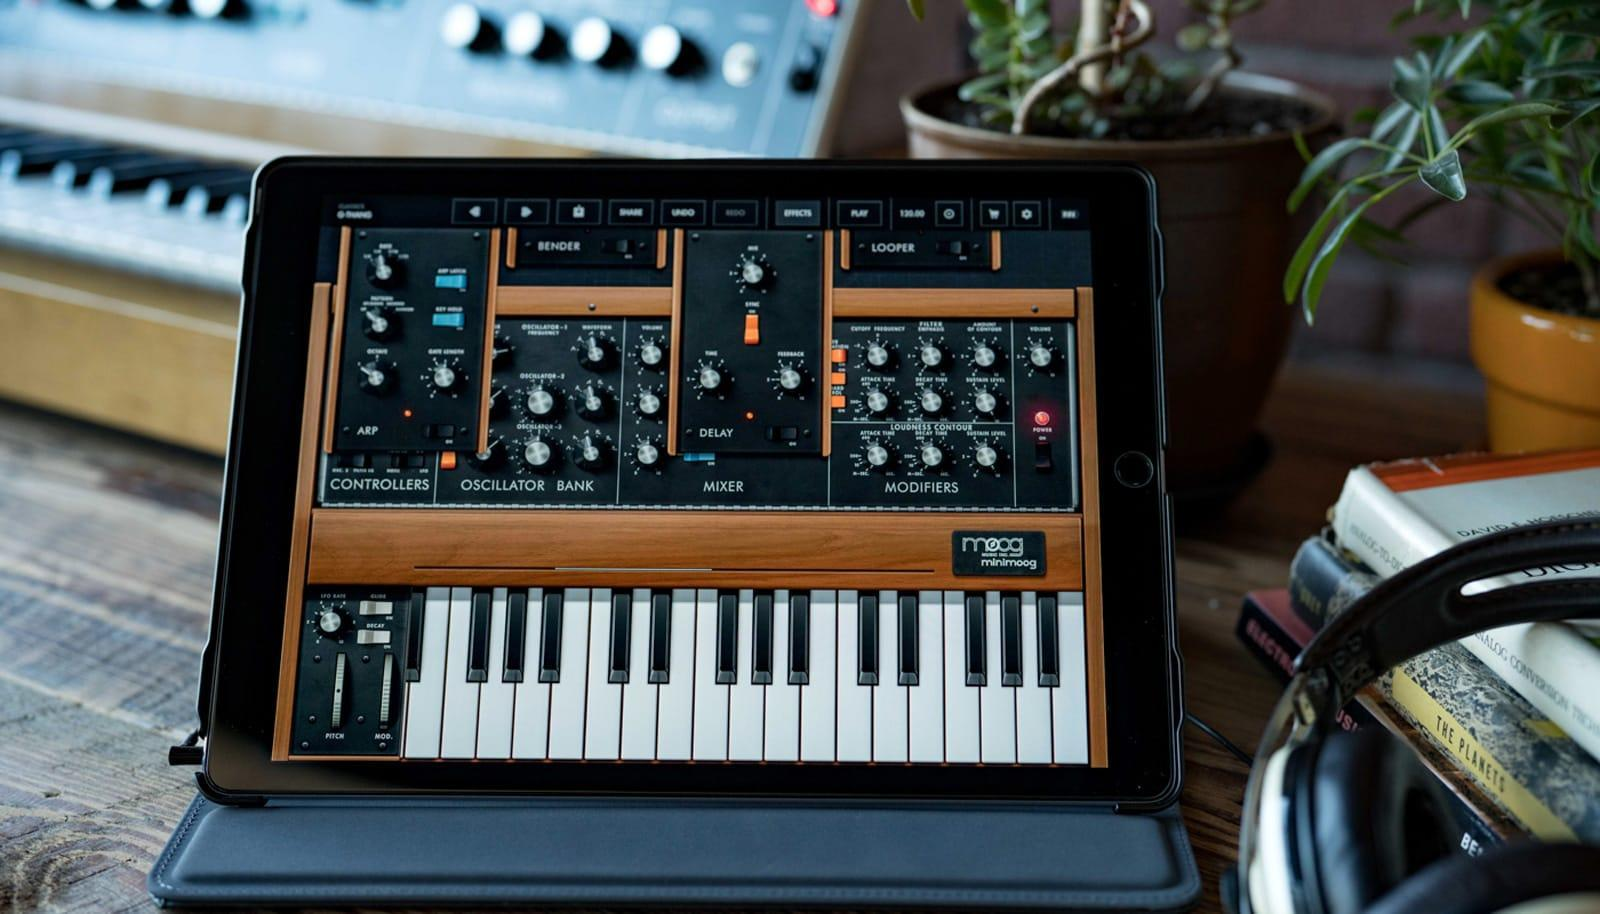 Moog and Korg make synth apps free to help musicians stuck at home | Engadget